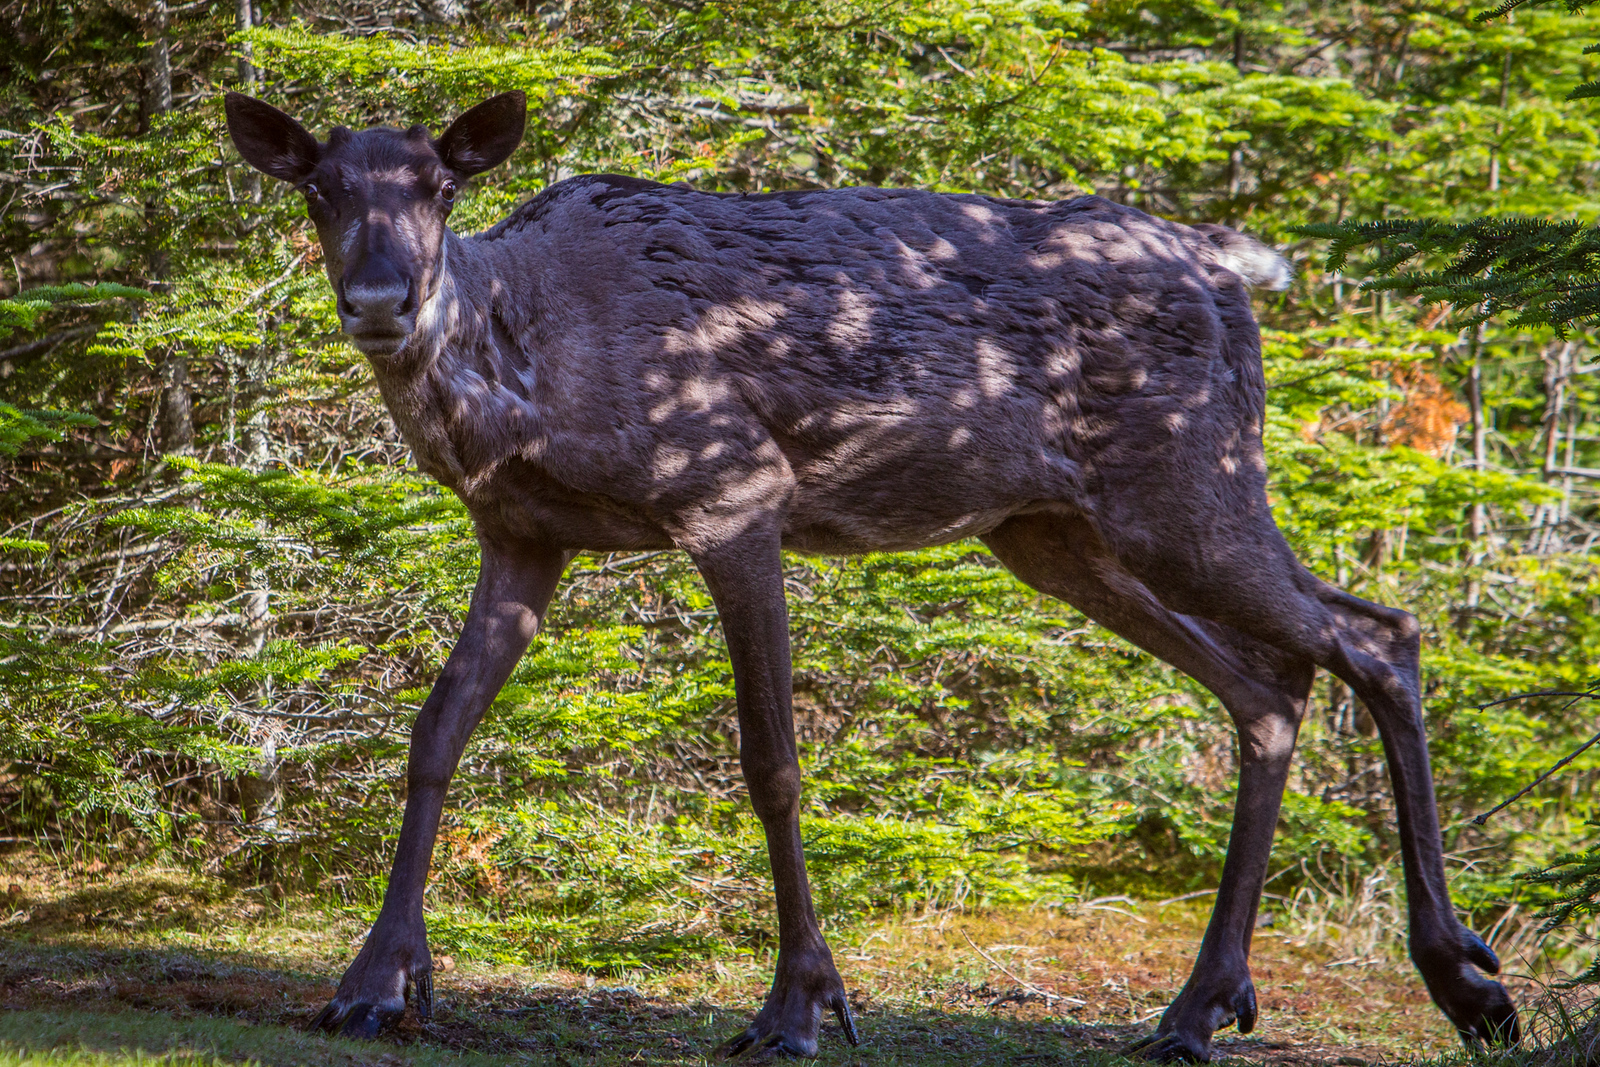 The Slate Islands are home to the largest concentration of Woodland Caribou